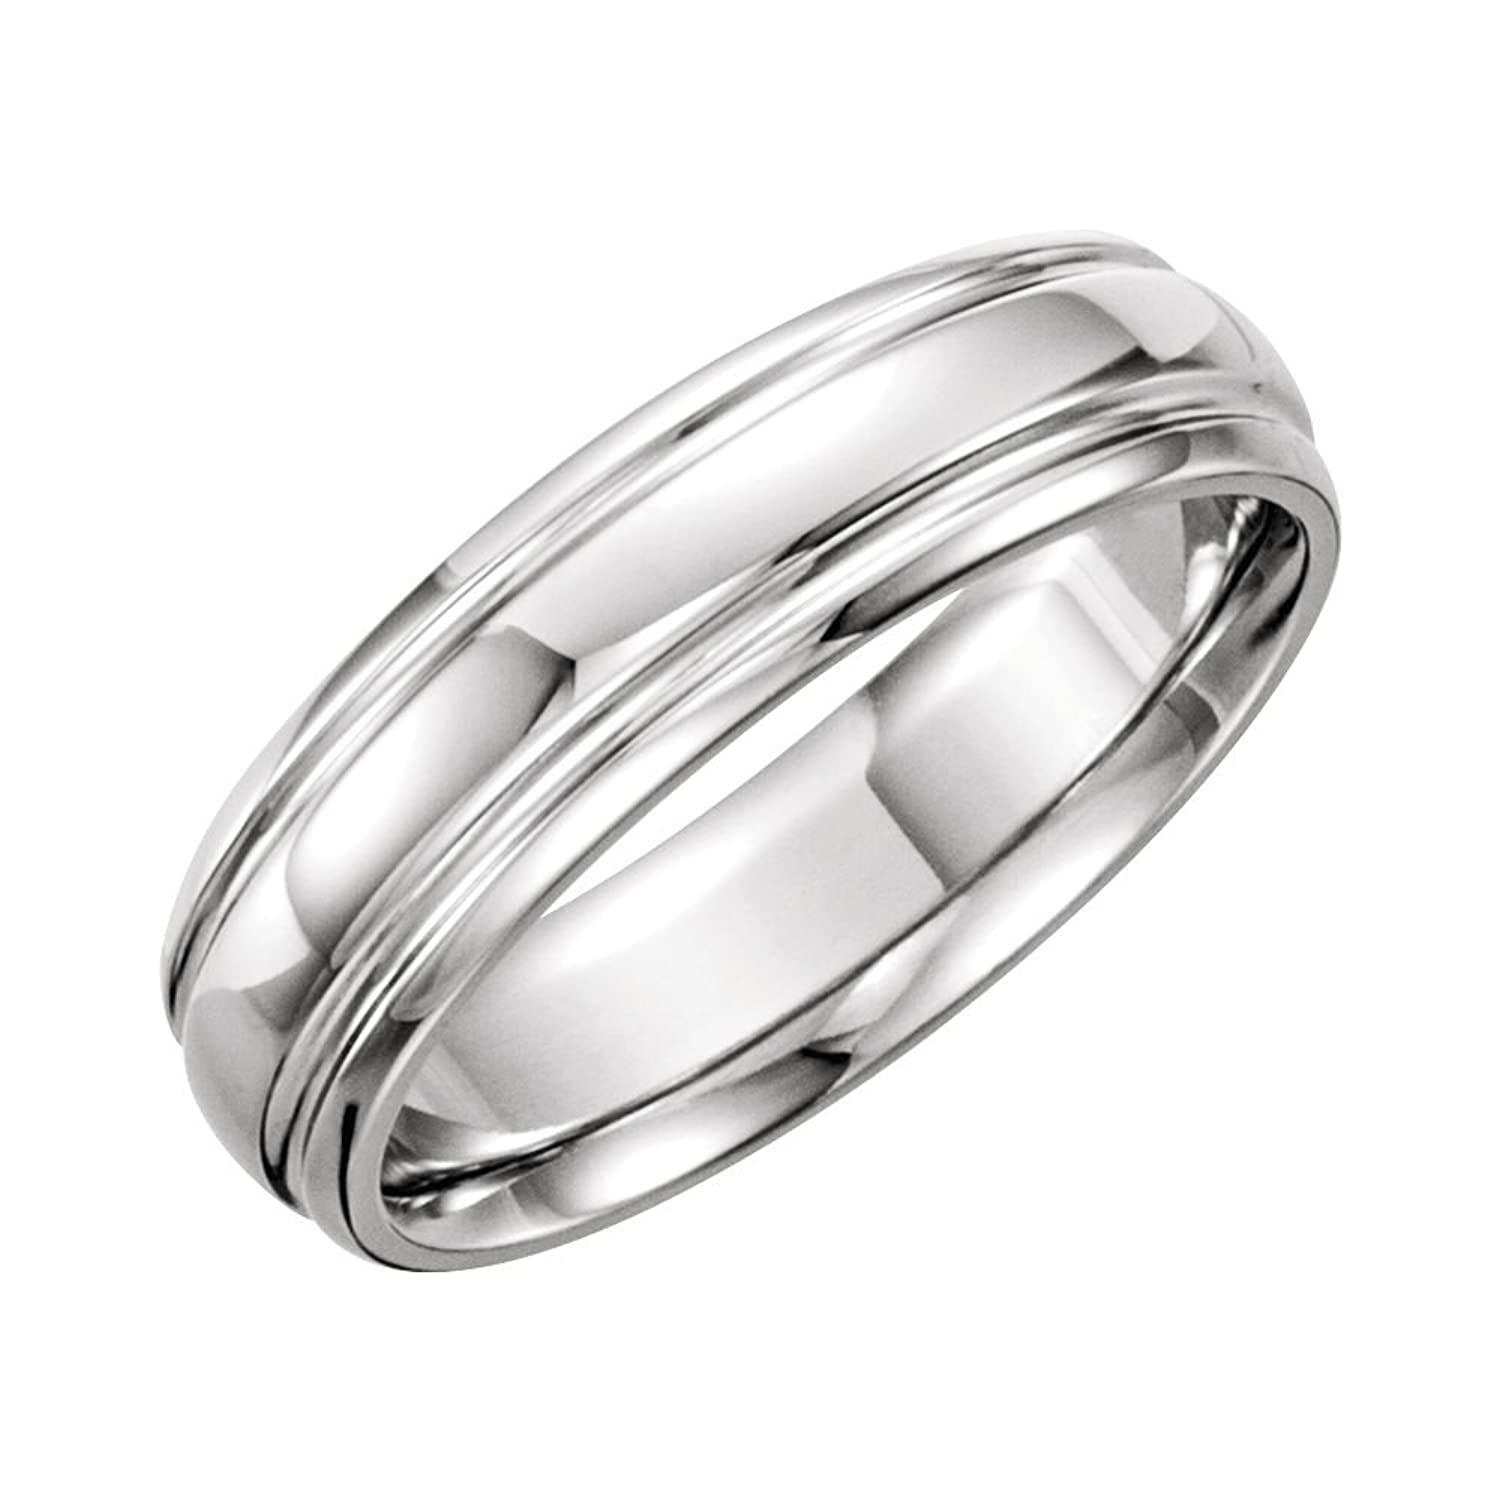 14K White 6mm Grooved Band Size 12